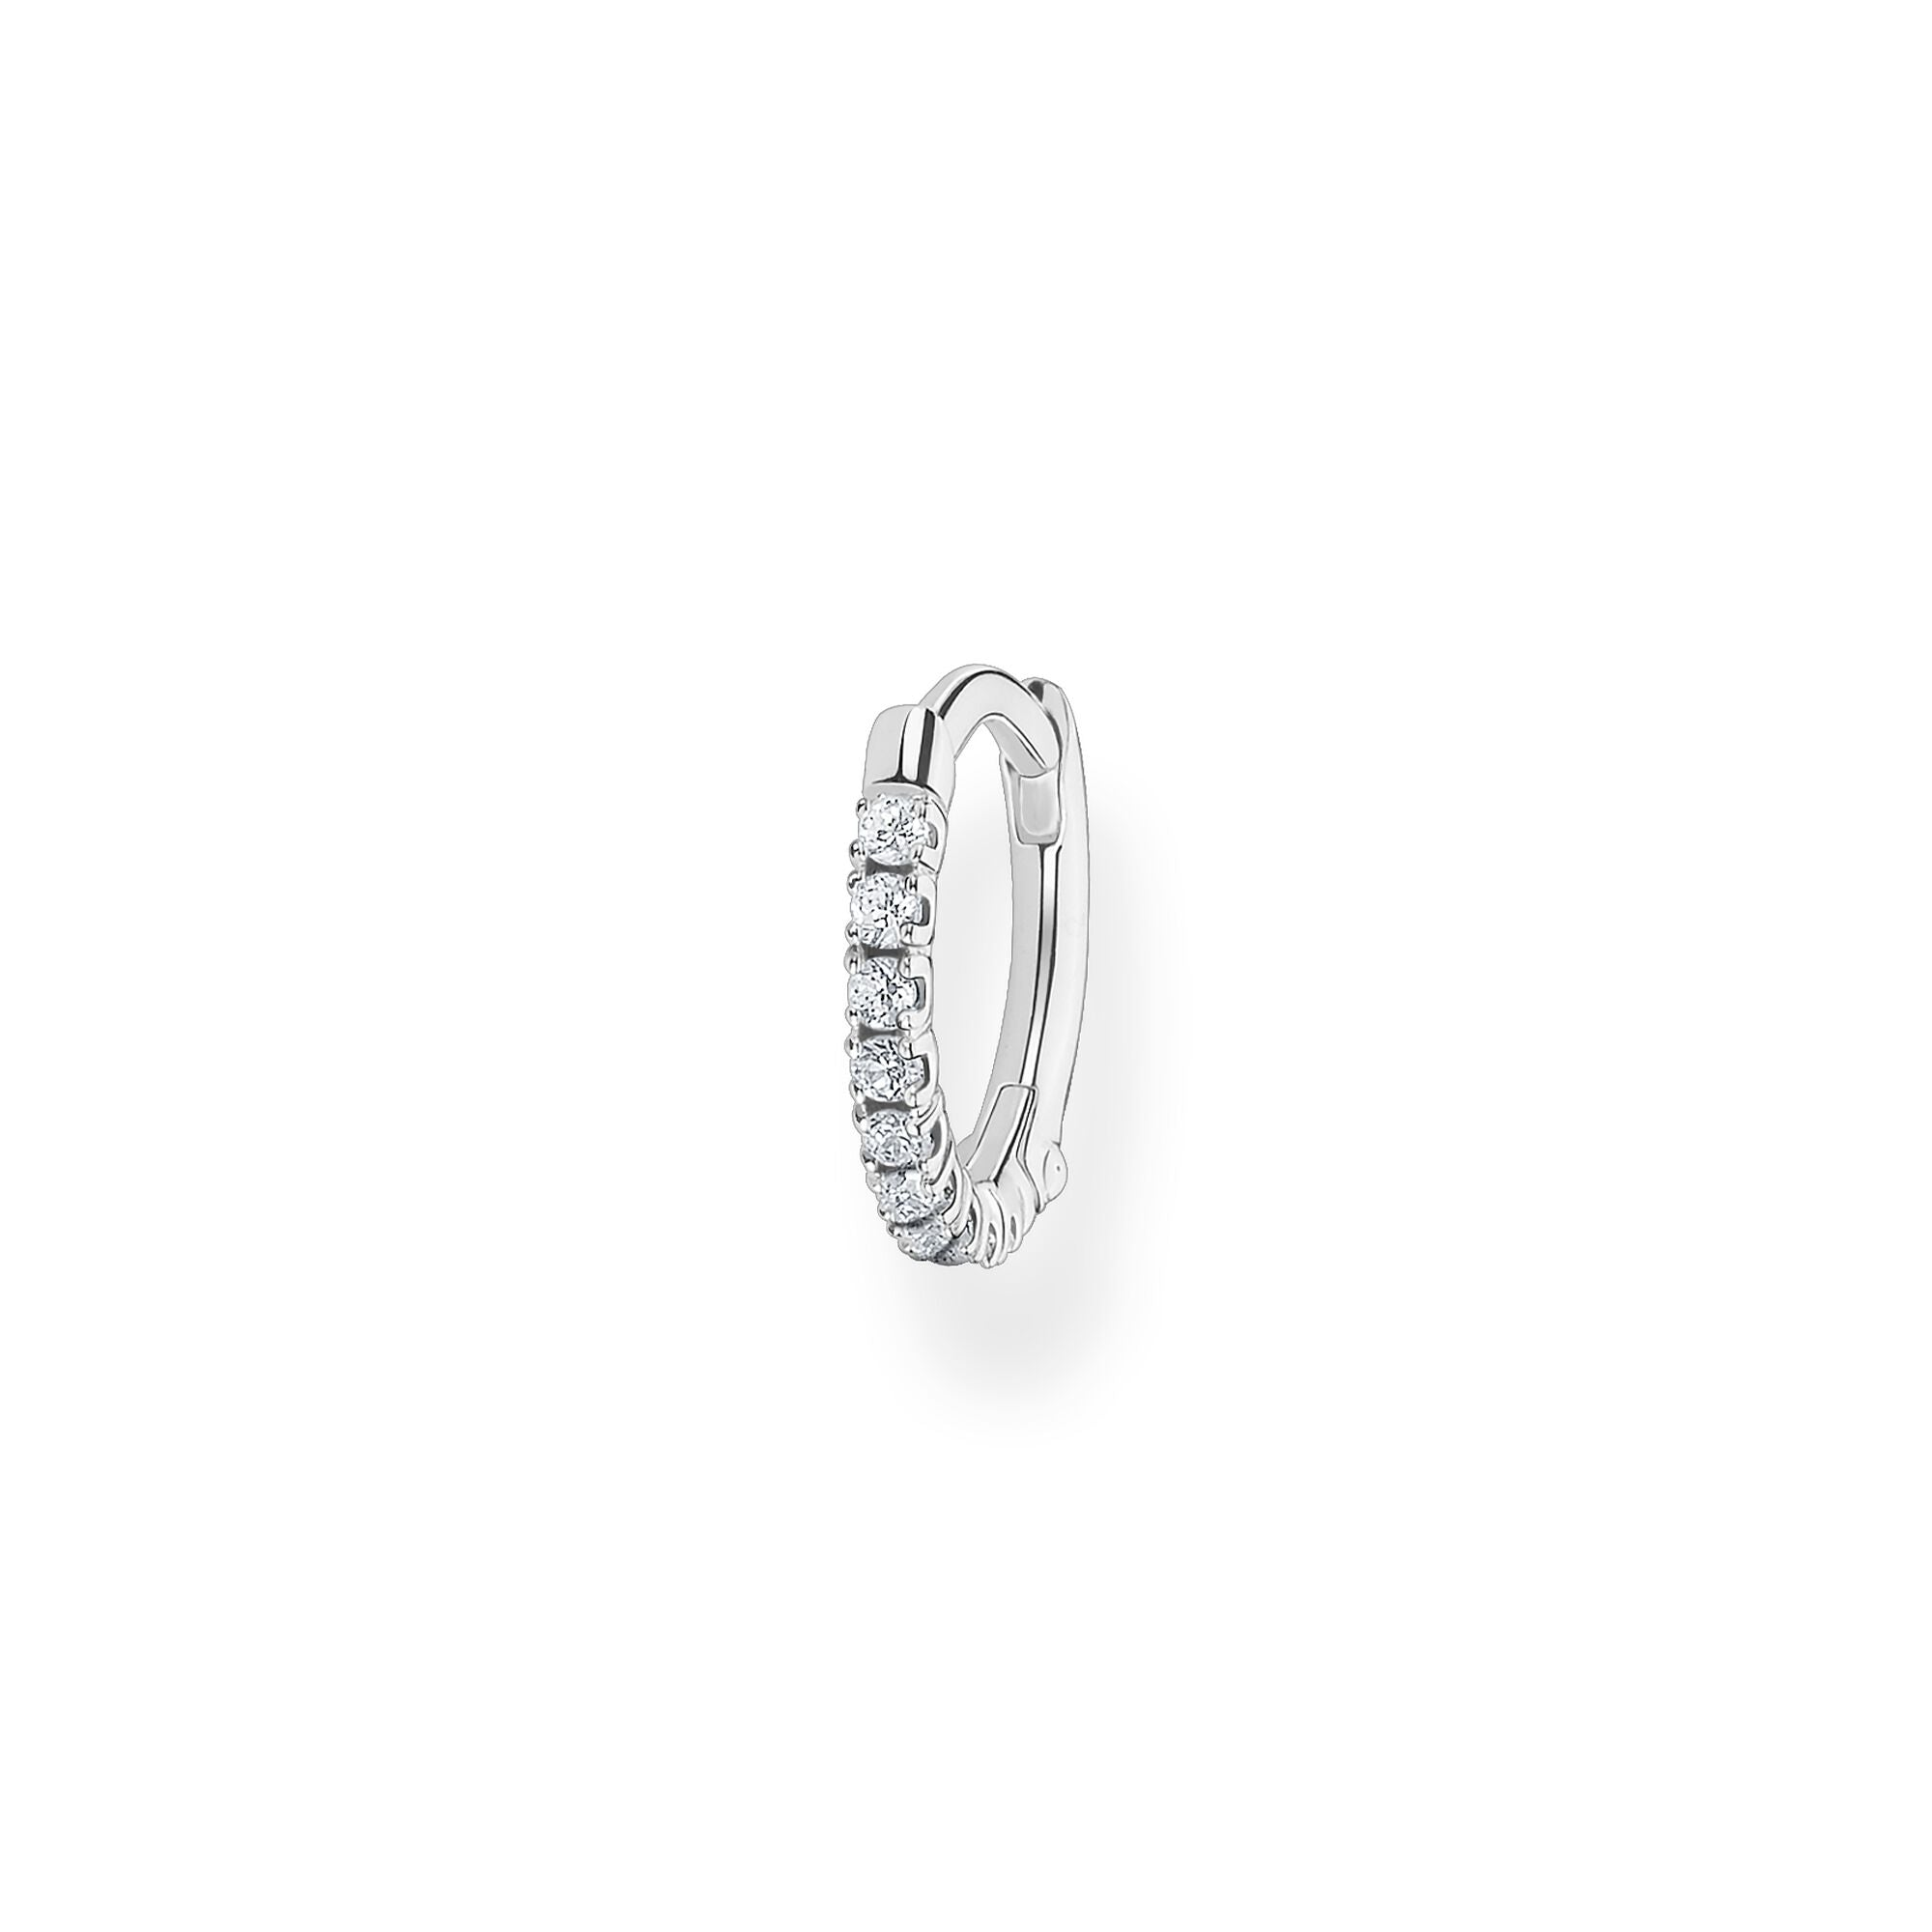 STERLING SILVER CHARMING COLLECTION 12MM CZ HOOP EARRING SINGLE